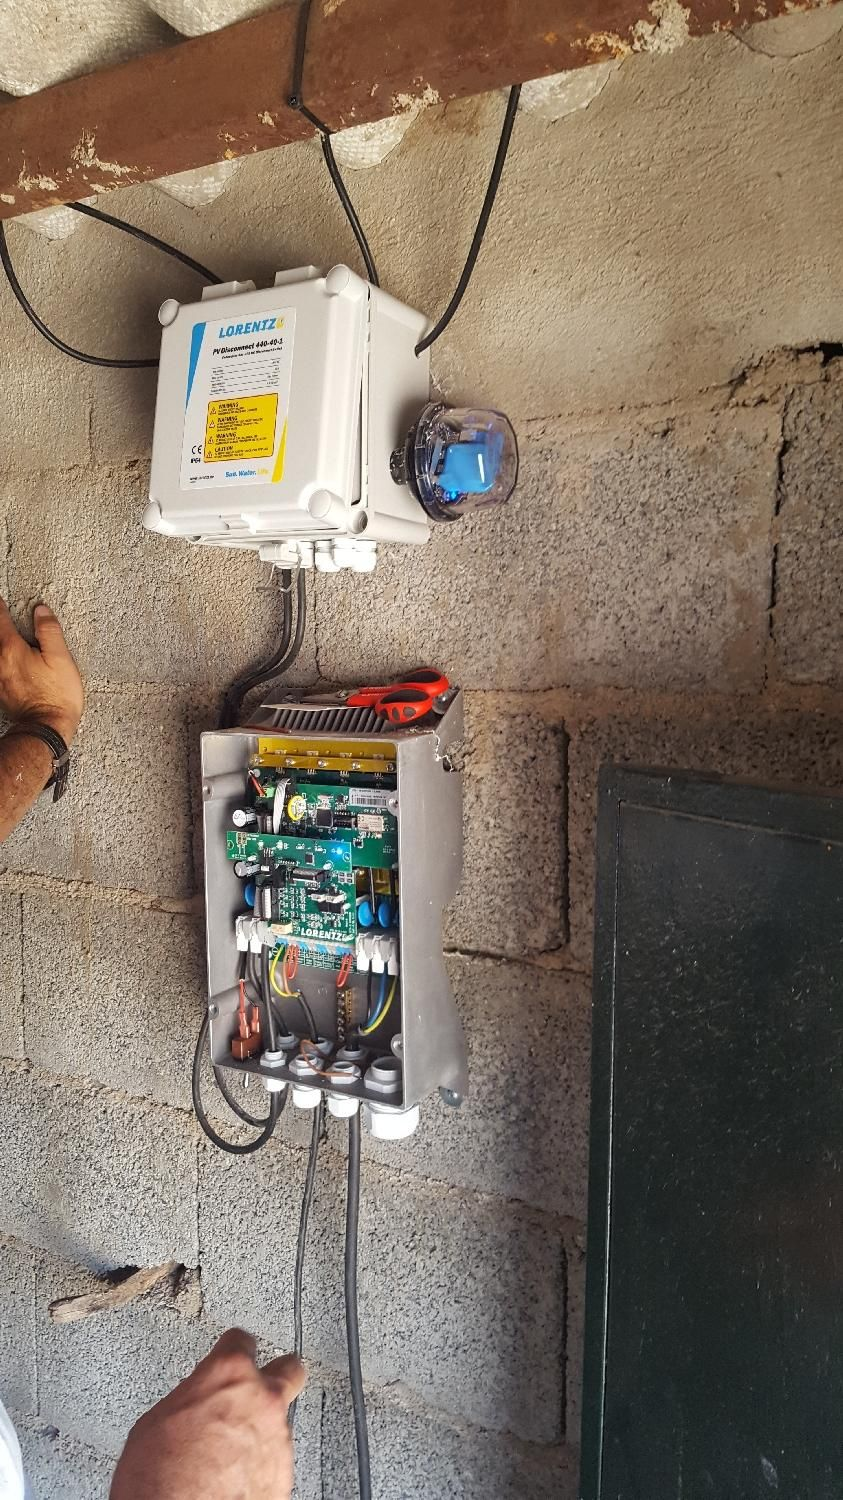 Lorentz Solar Pumping Reference In Montejicar Eagle Wiring Devices Philippines July 2017